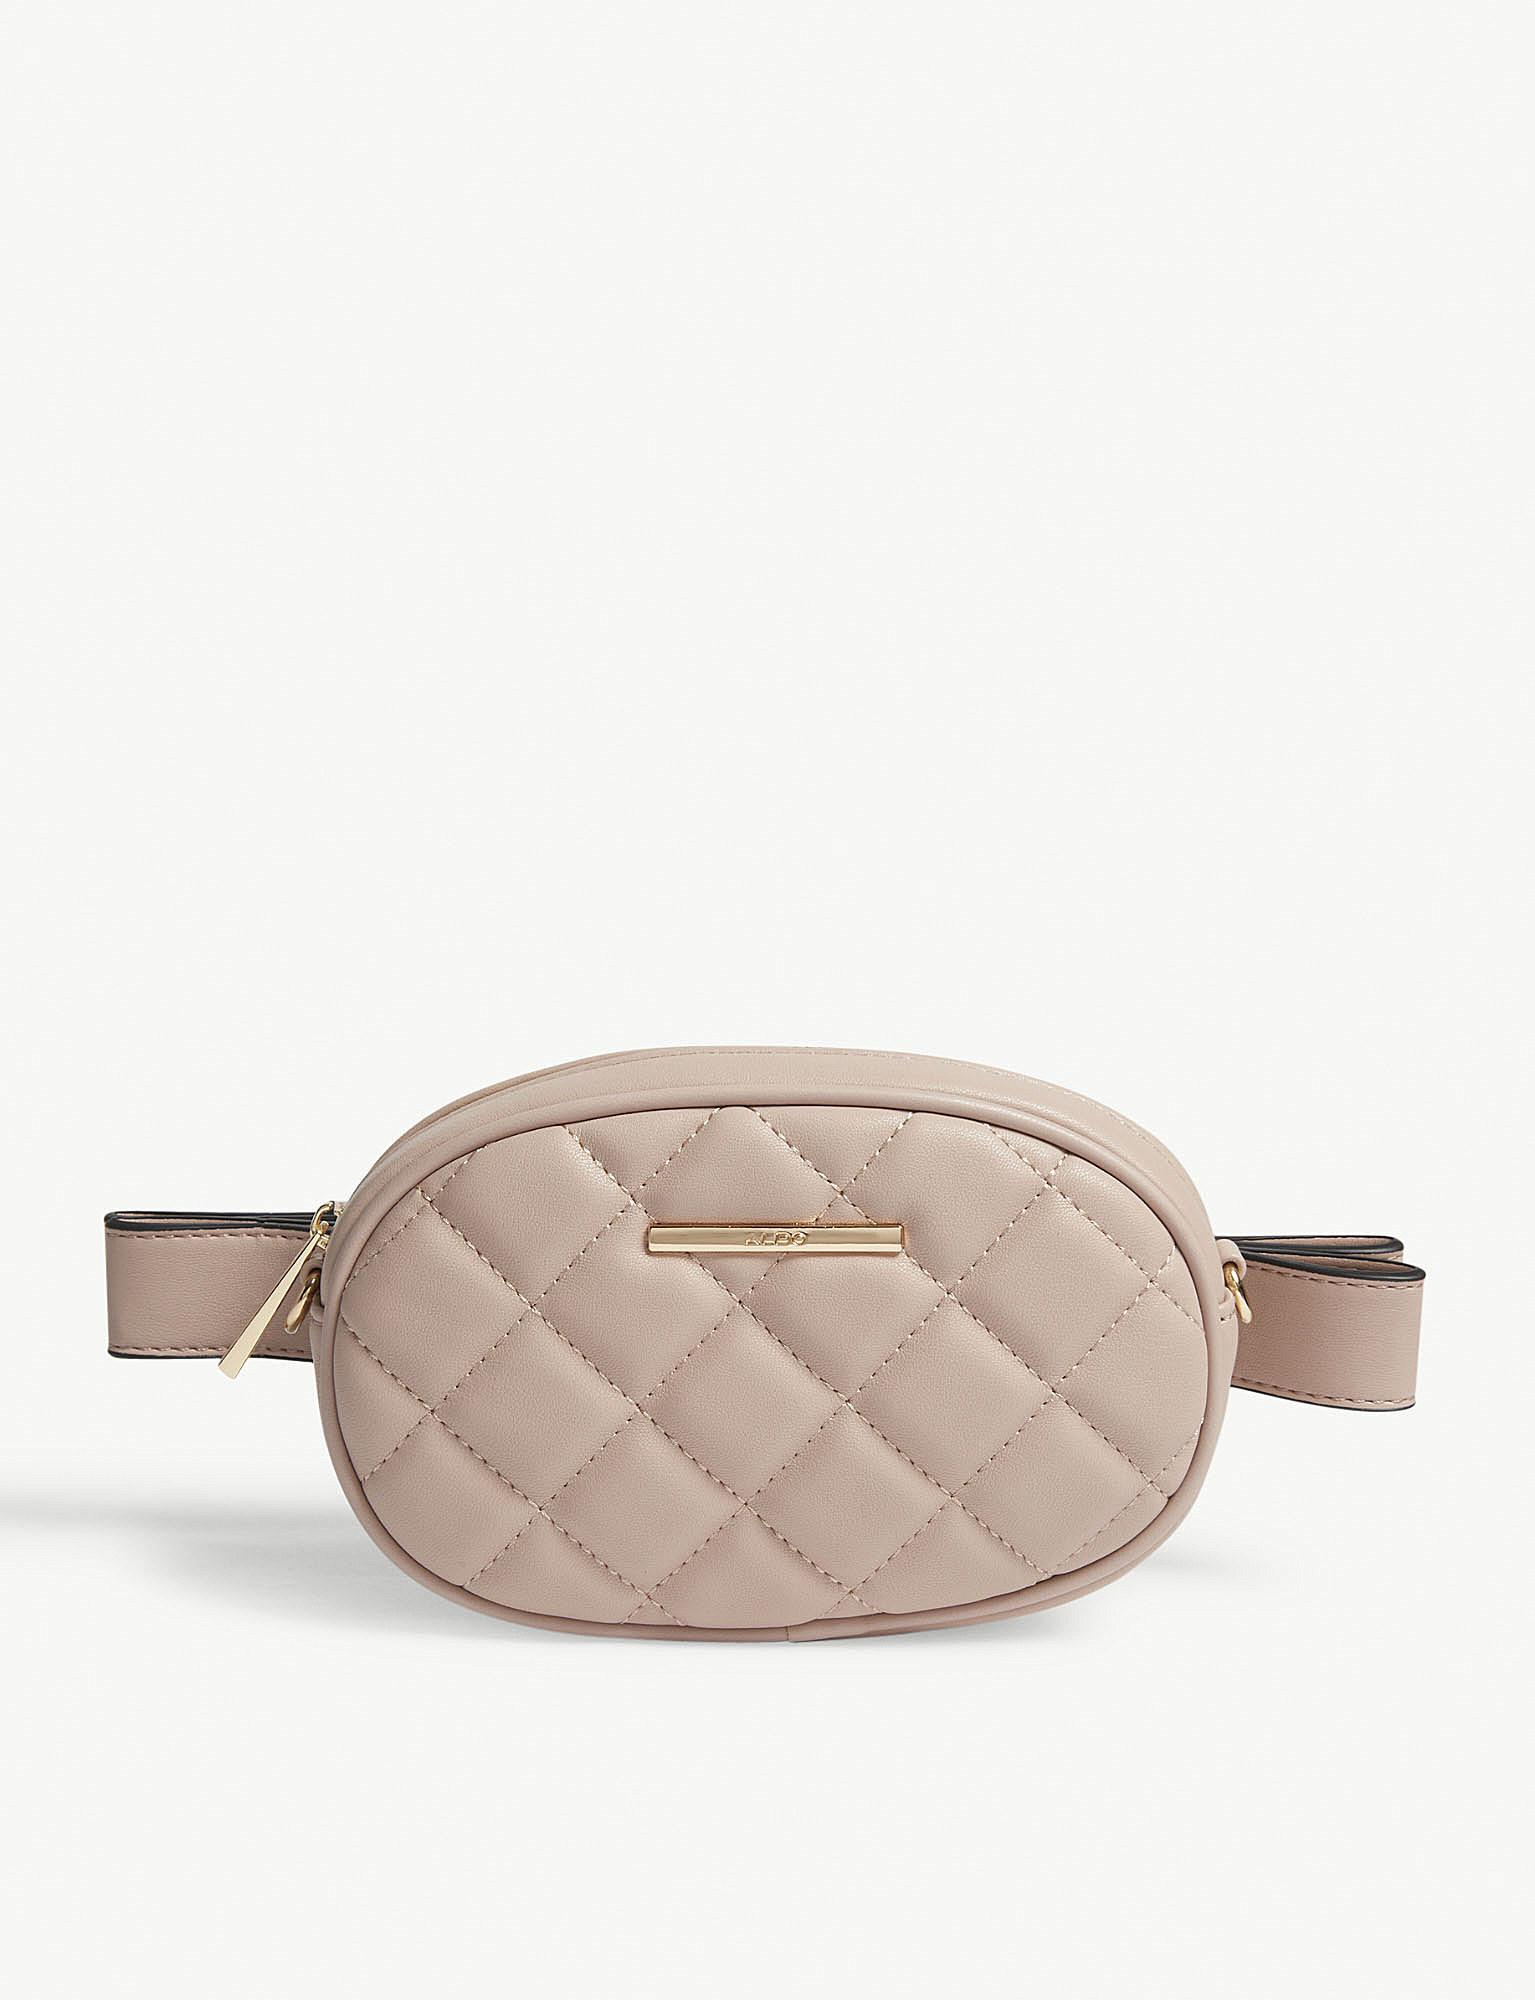 61454e27686 Lyst Aldo Pounce Quilted Belt Bag In Pink. Lyst Aldo Pounce Quilted Belt Bag  In Pink. Aldo 2019 Ss Aldo Quilted Waist Bag Brilalle By Pointgrey Buyma